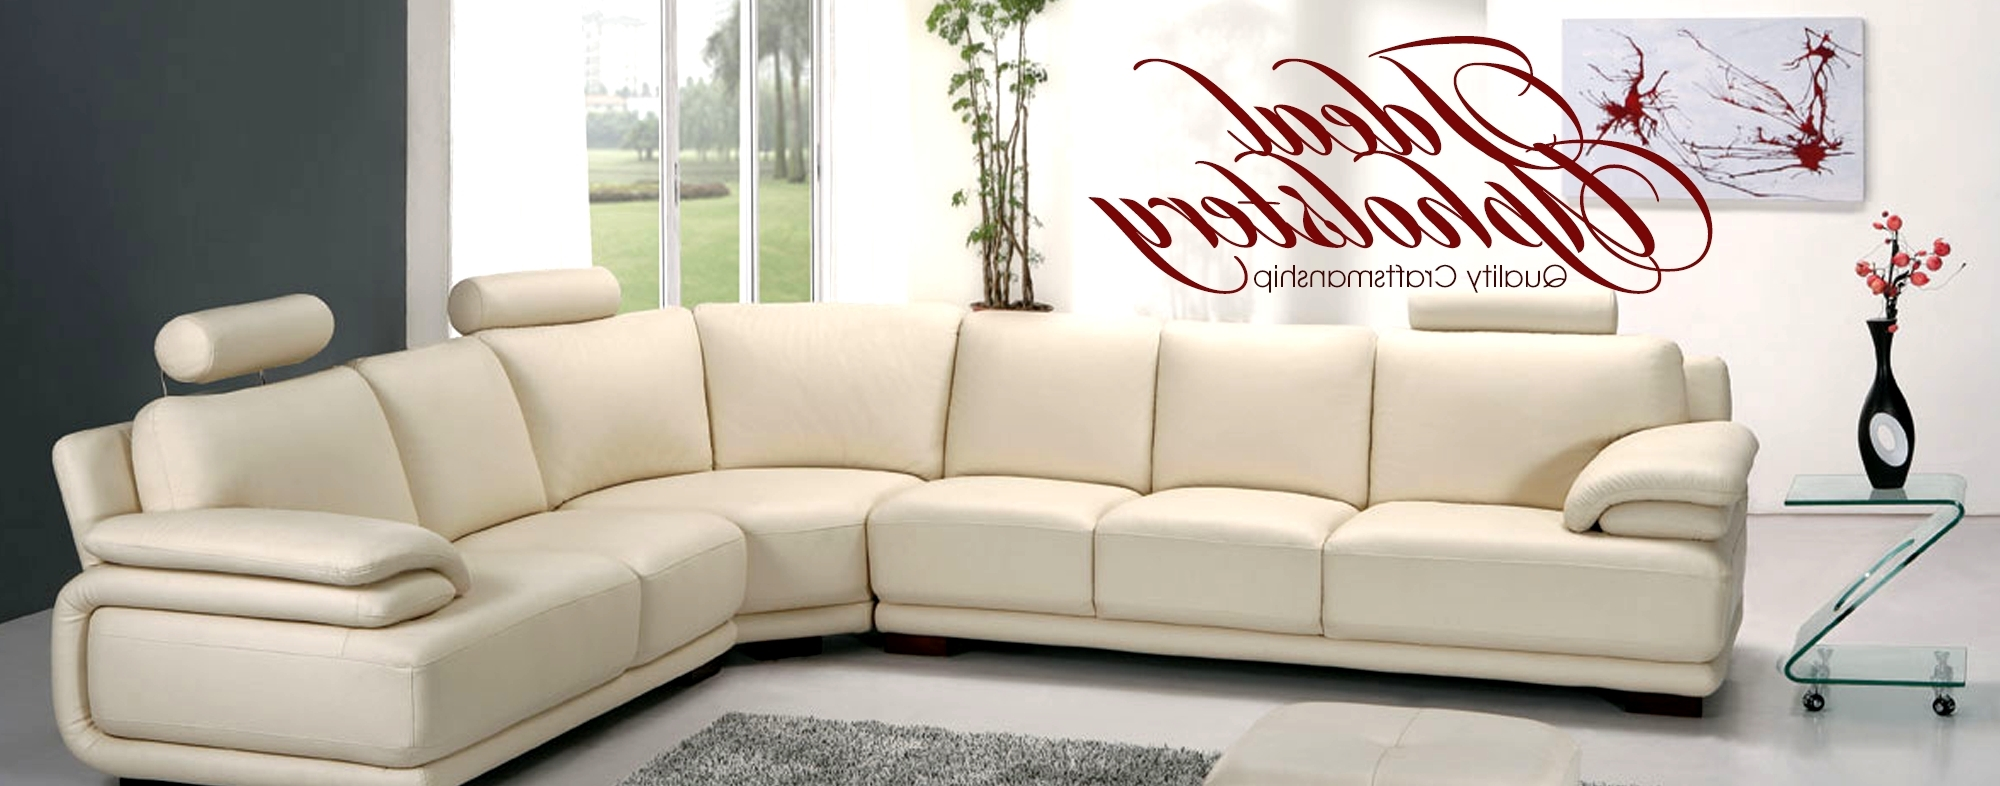 20 Ideas Of Ventura County Sectional Sofas Throughout Ventura County Sectional Sofas (Image 6 of 10)